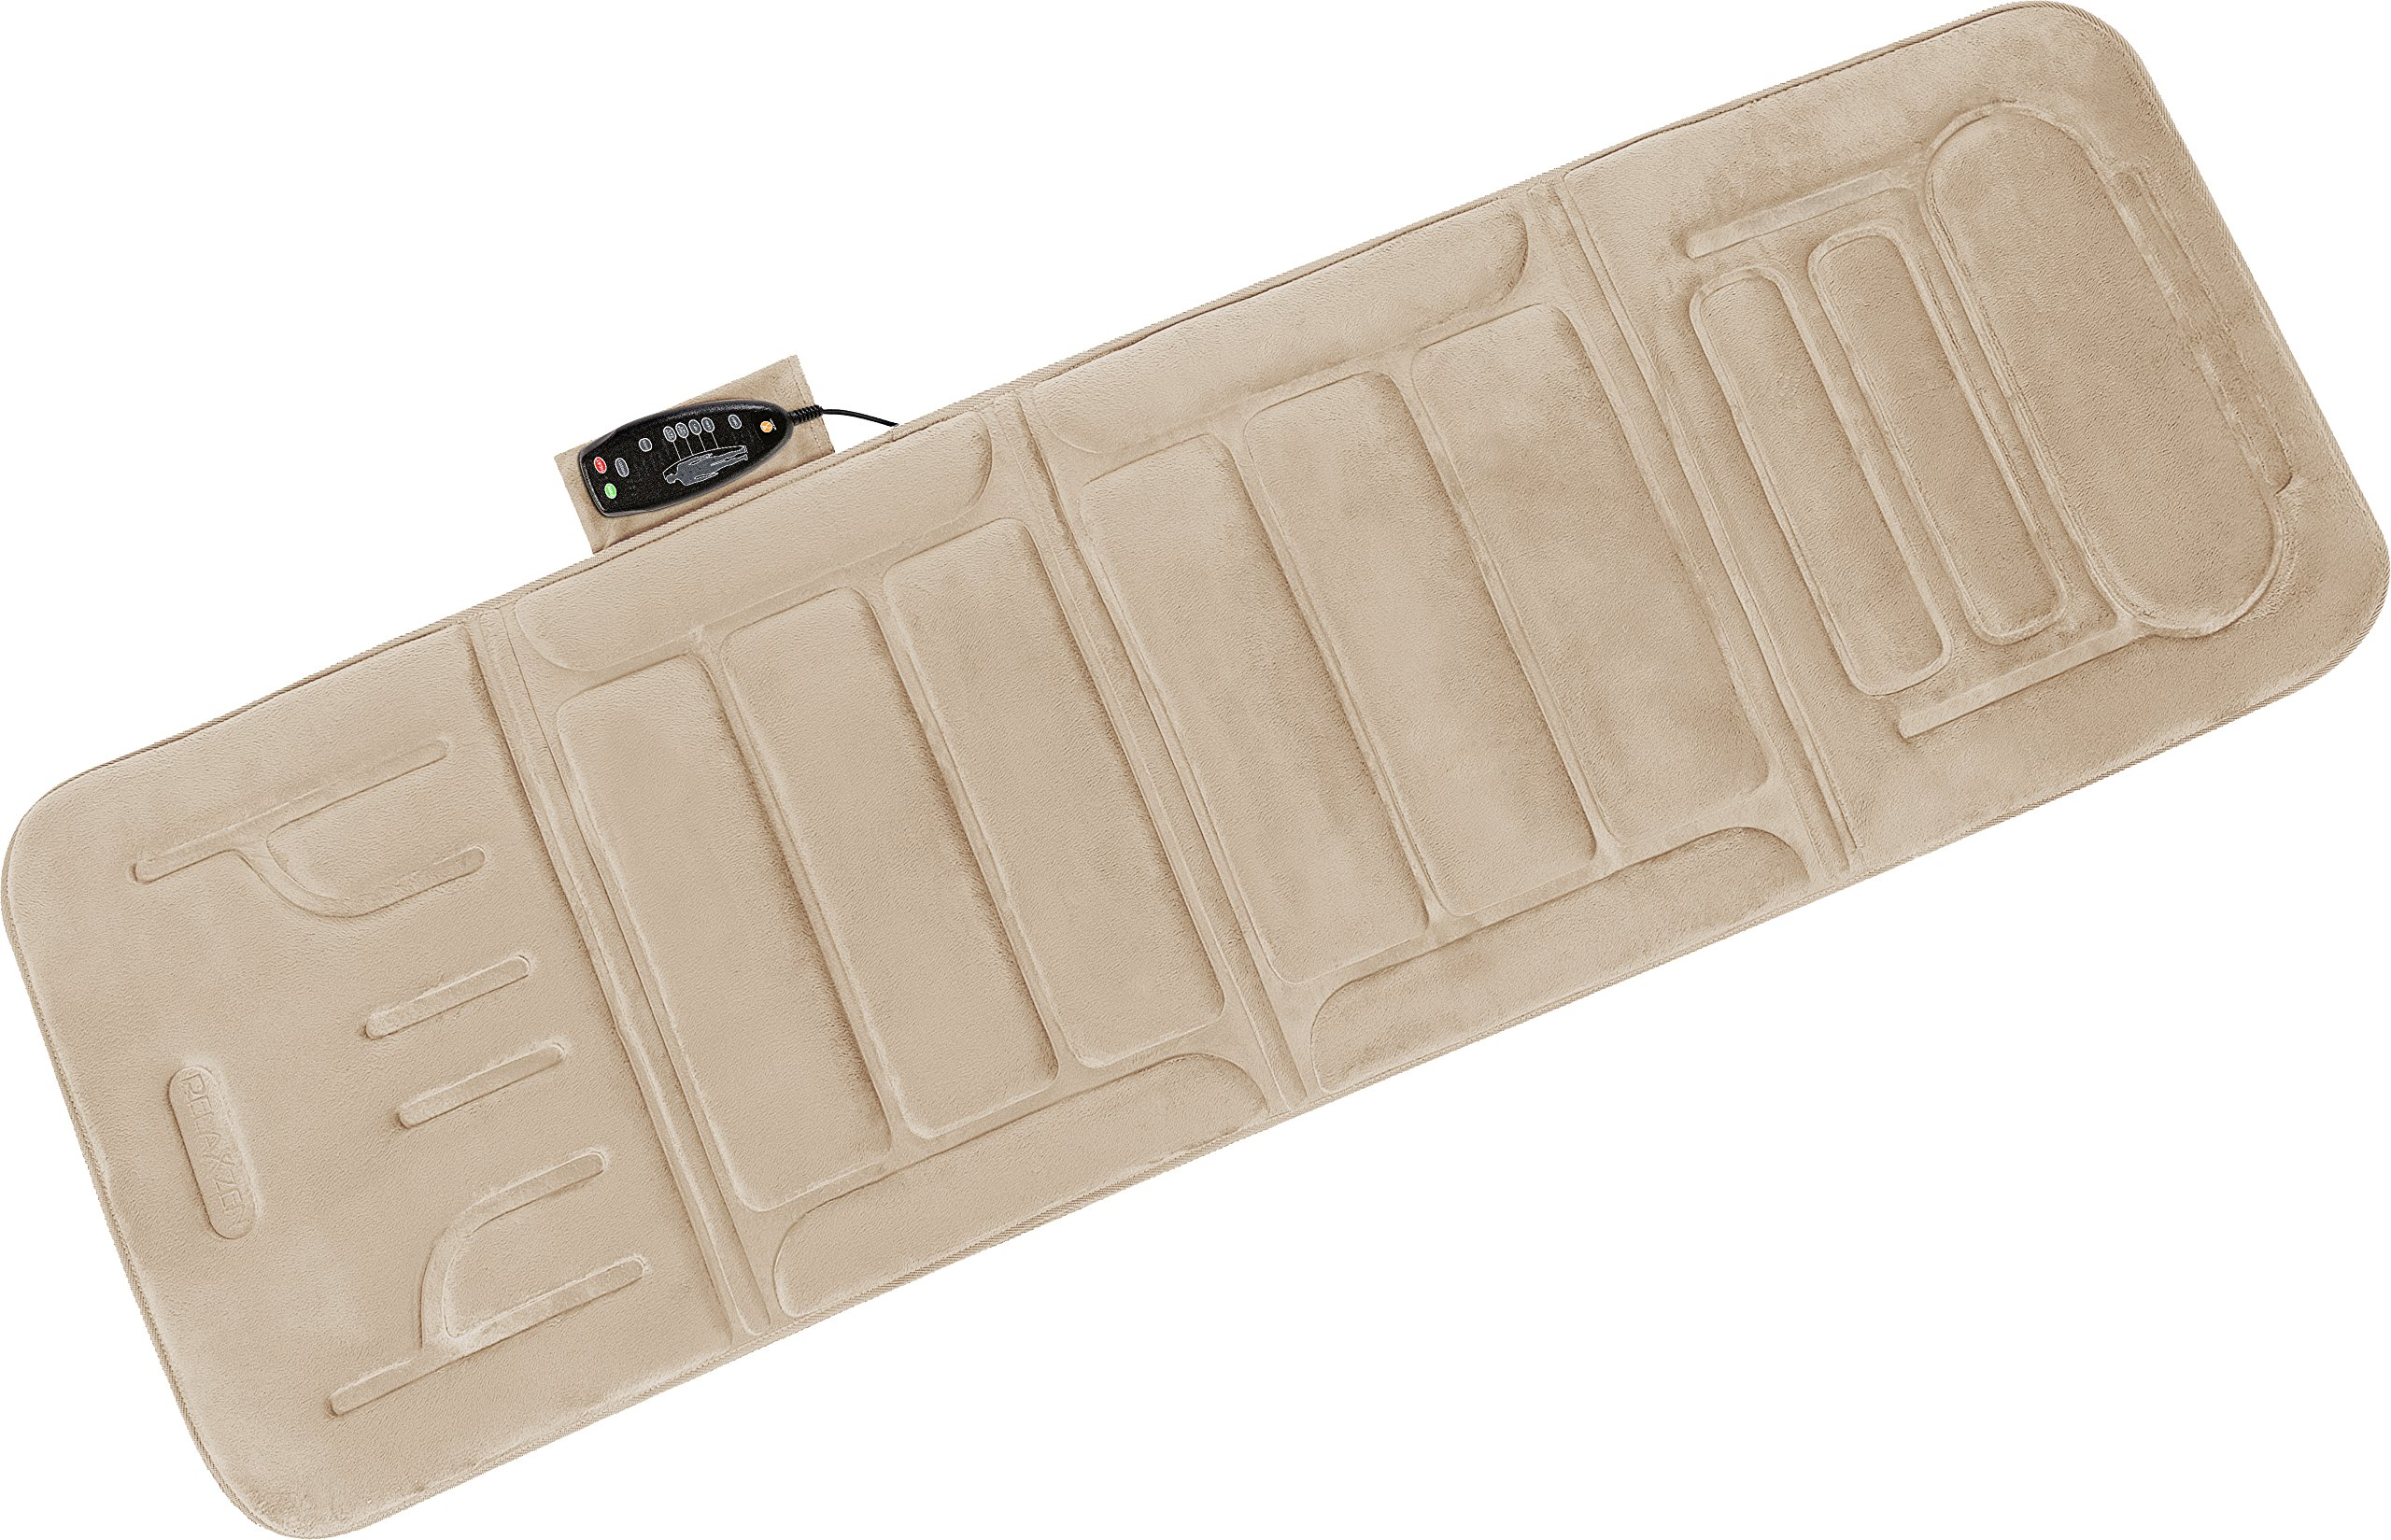 Relaxzen 10-Motor Massage Plush Mat with Heat and Extra Foam, Beige